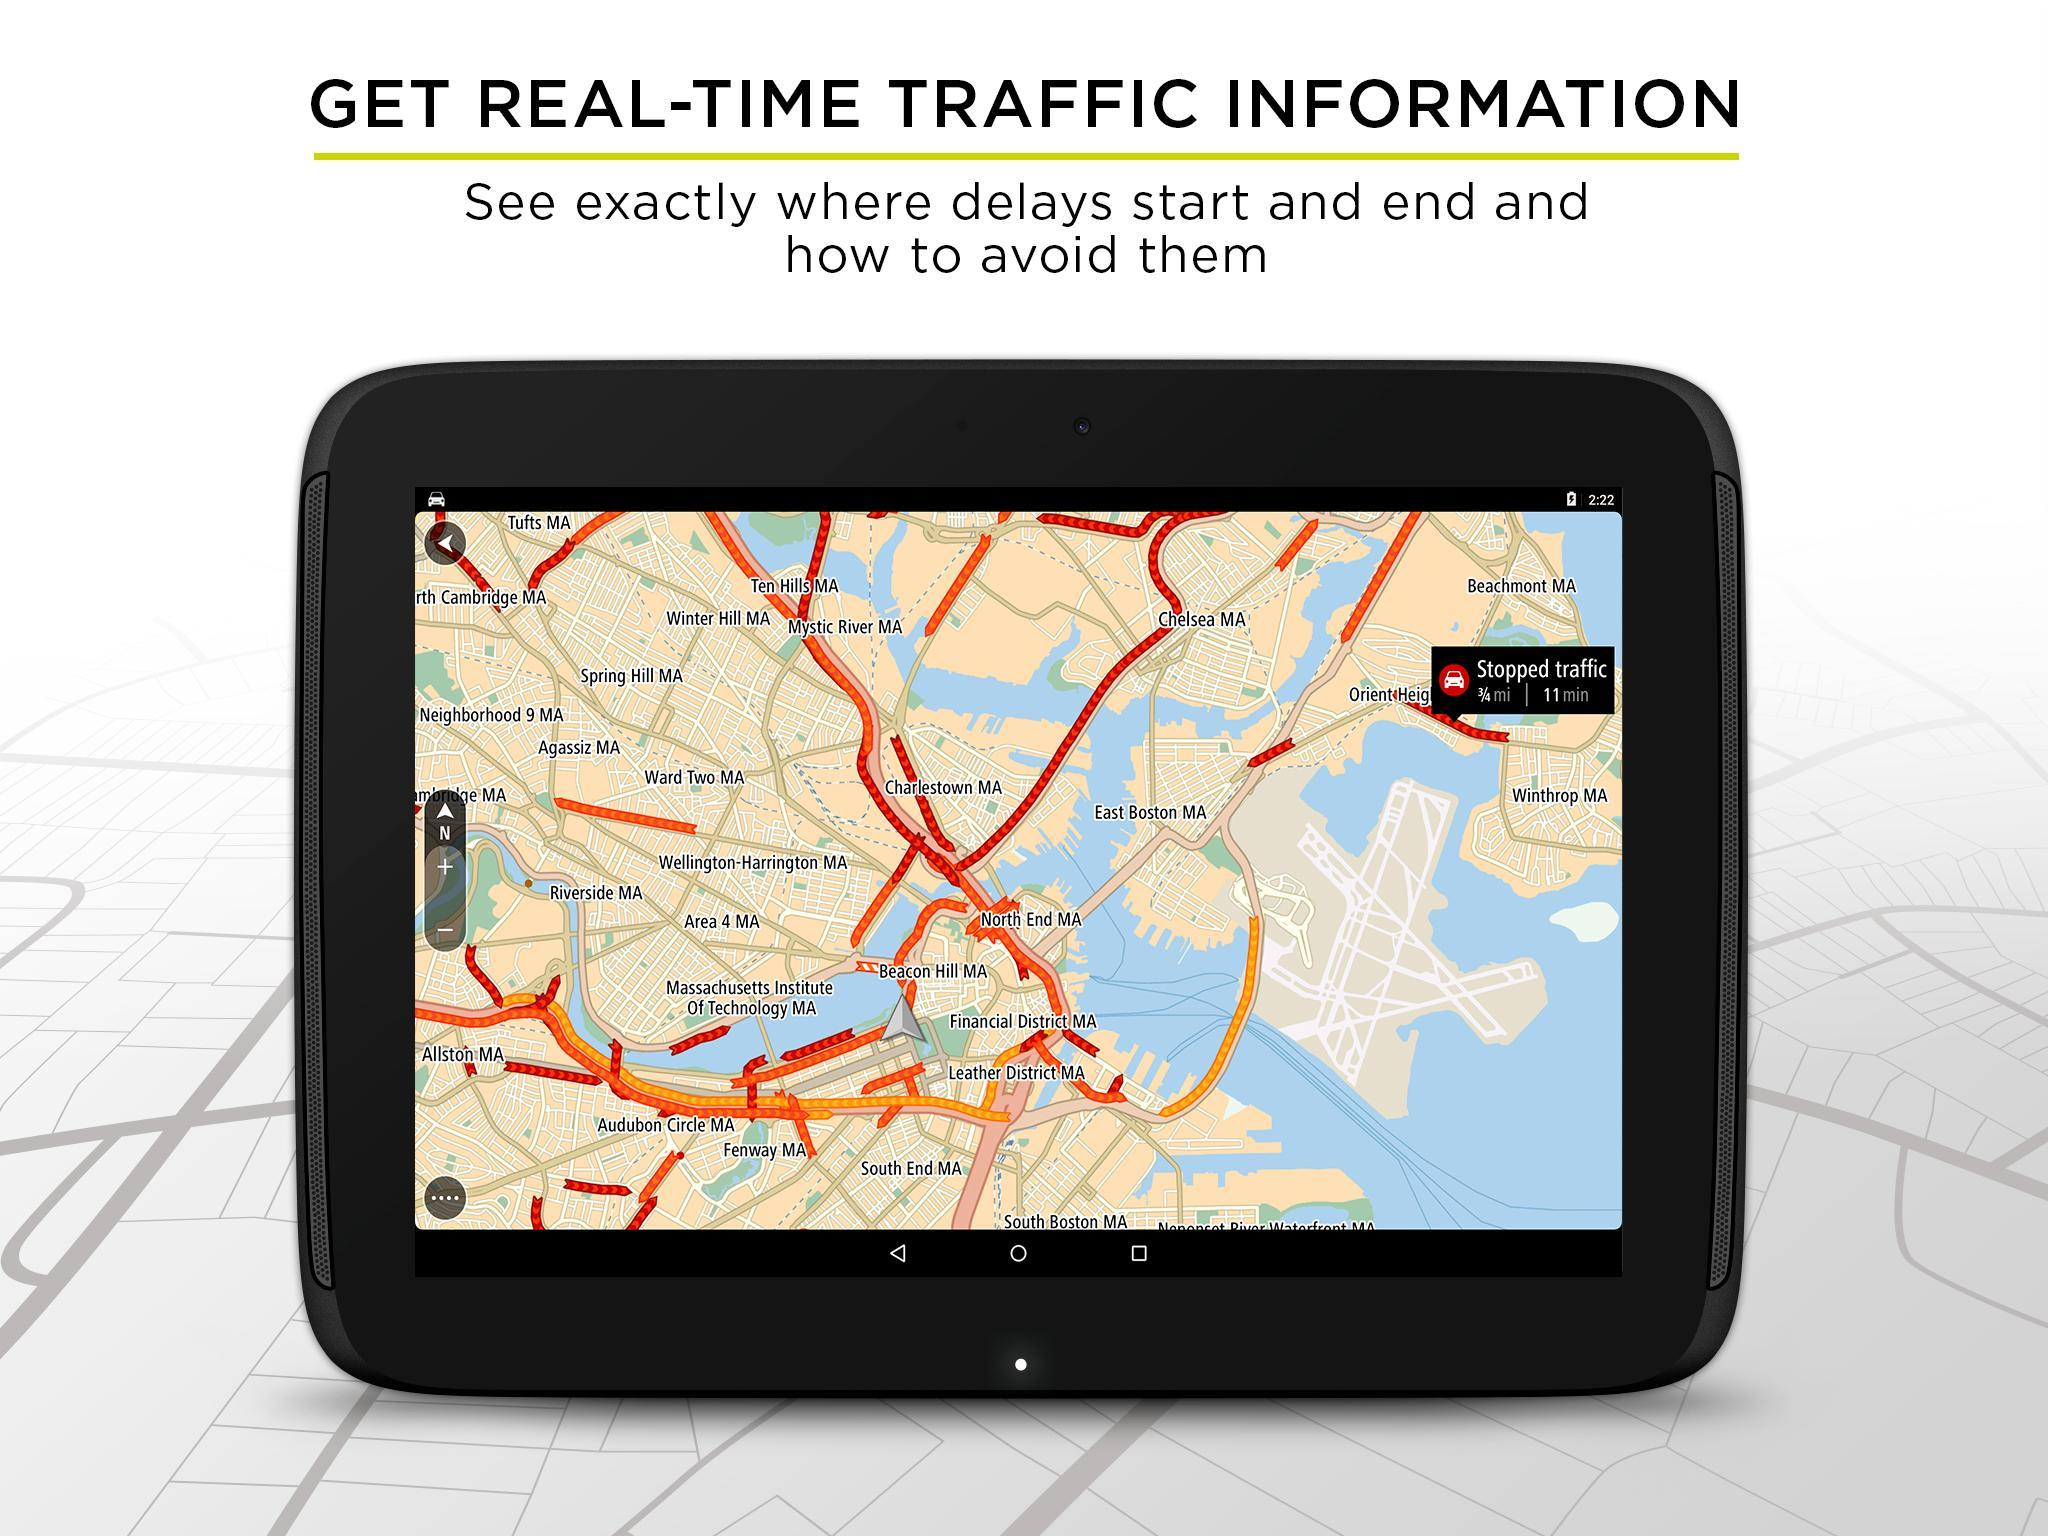 TomTom GPS Navigation - Live Traffic Alerts & Maps 2.0.4 Screenshot 9